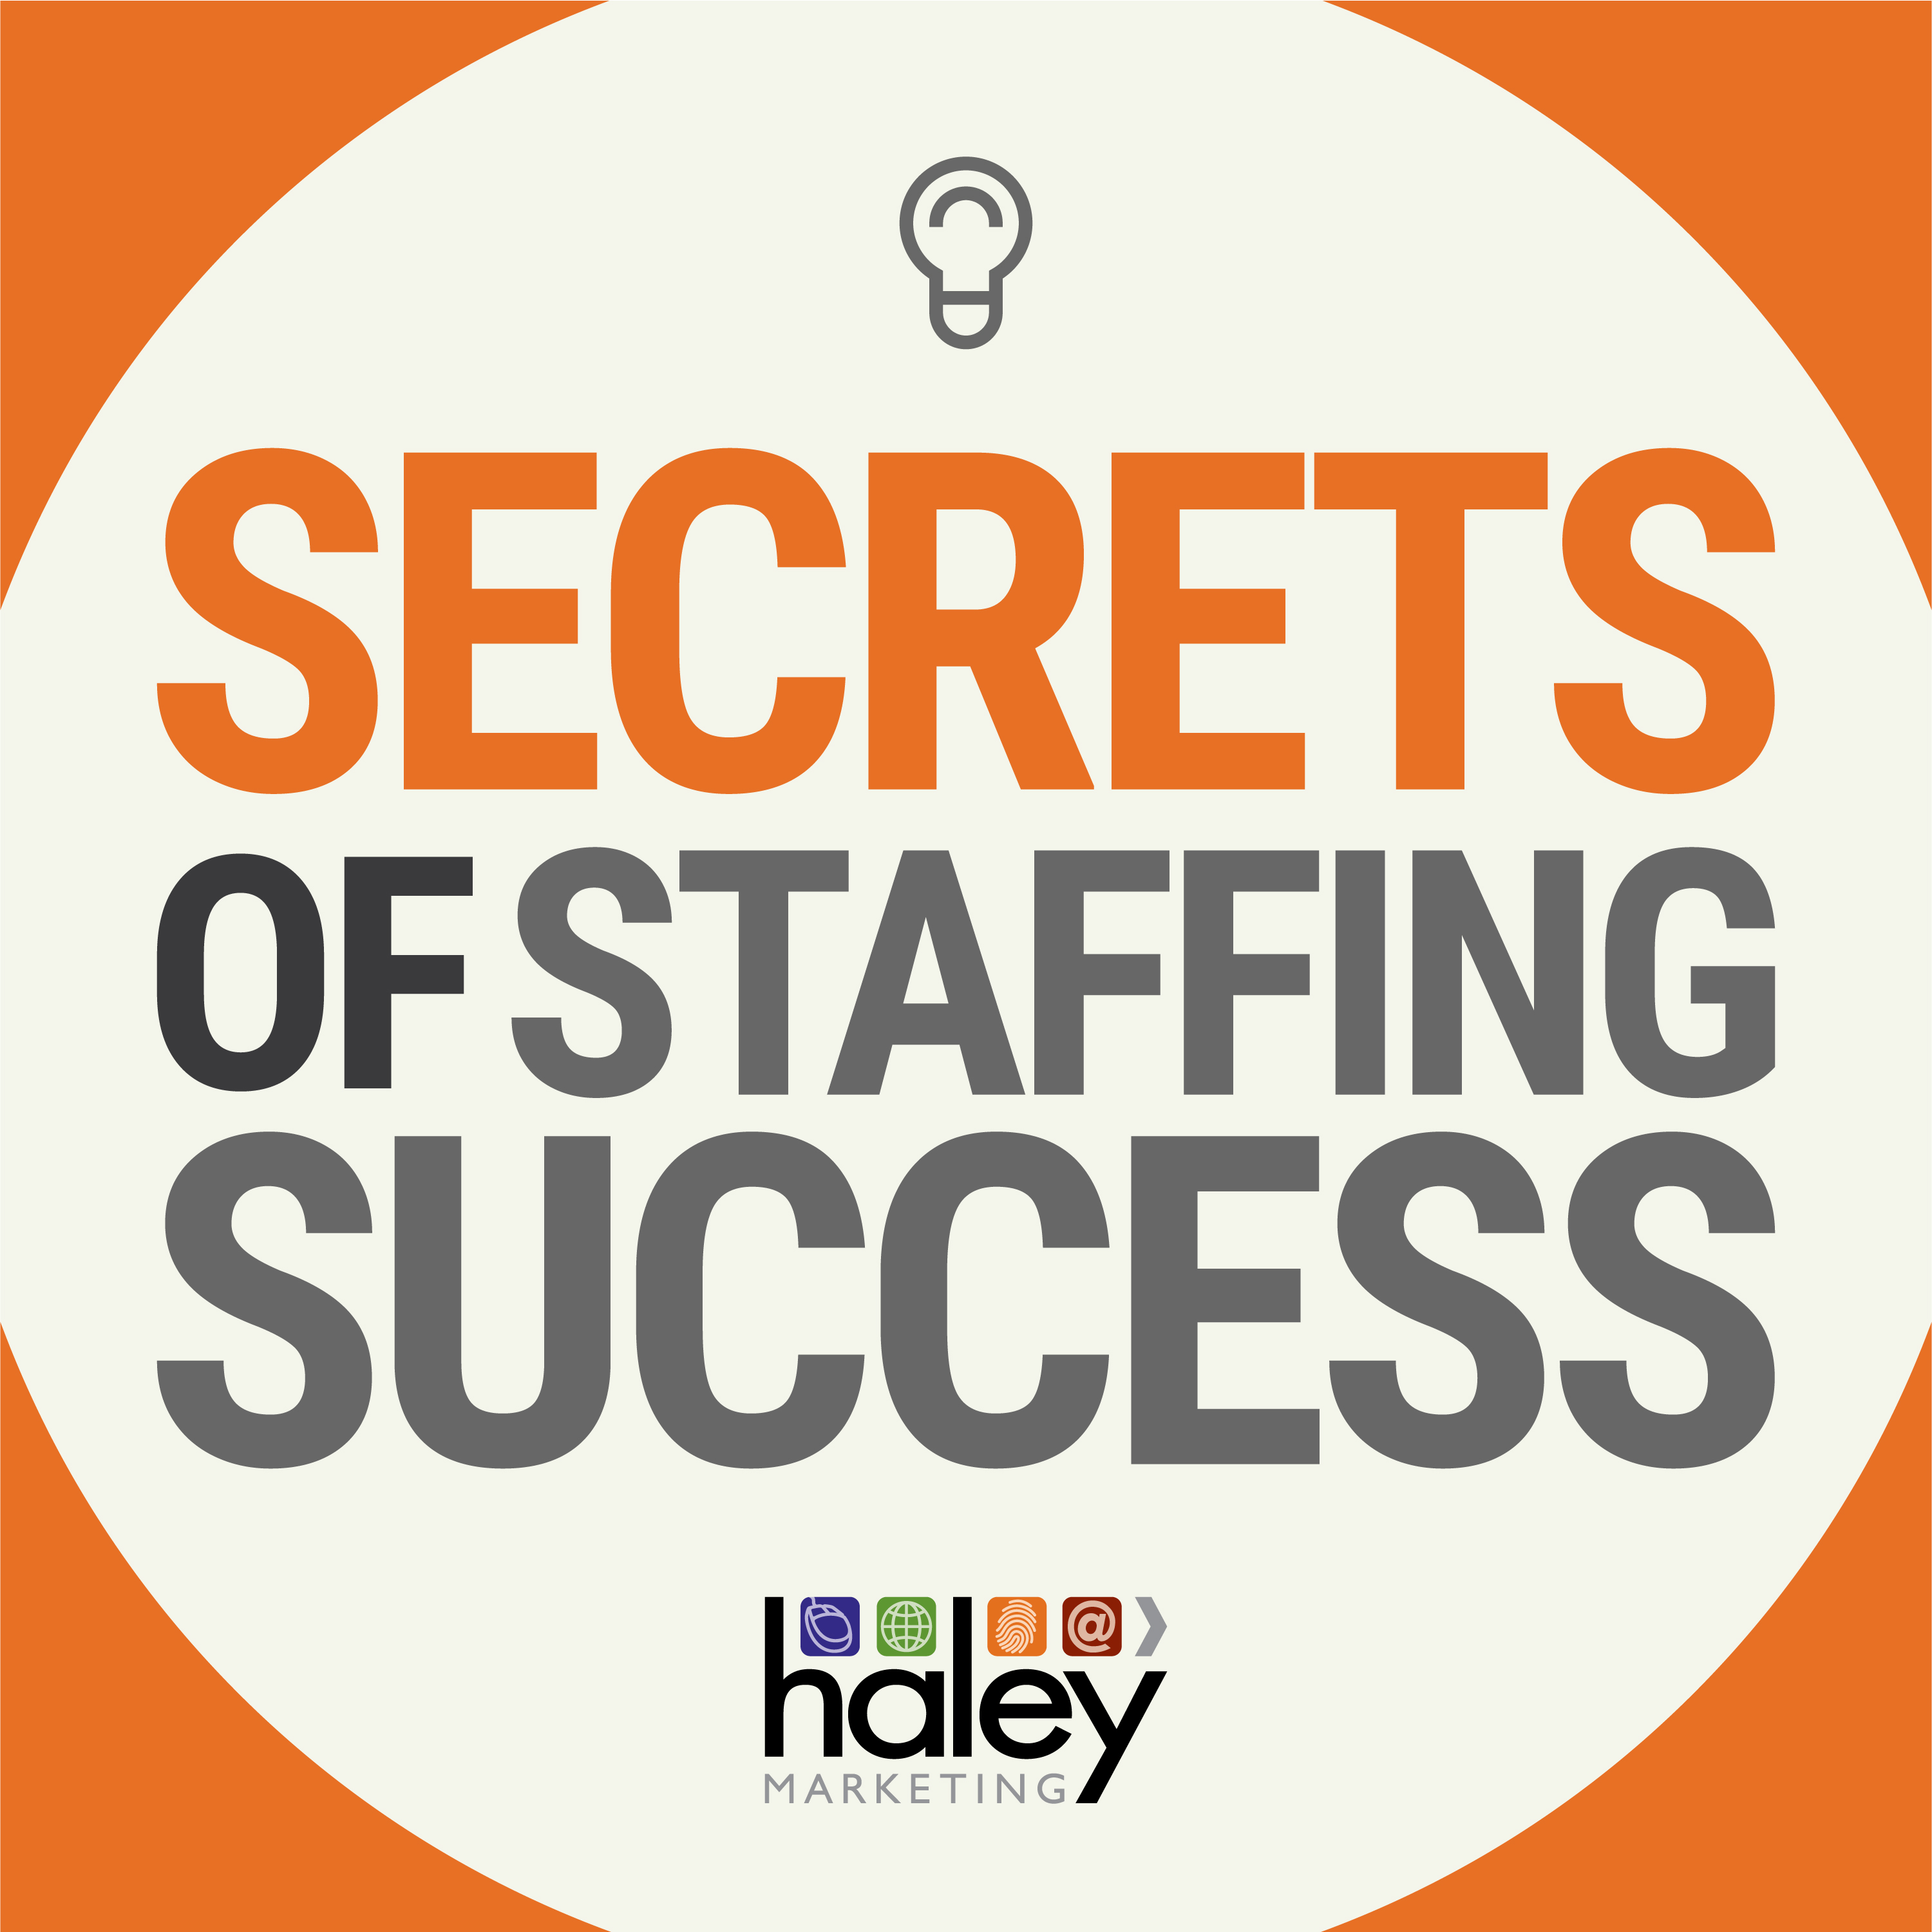 Secrets of Staffing Success